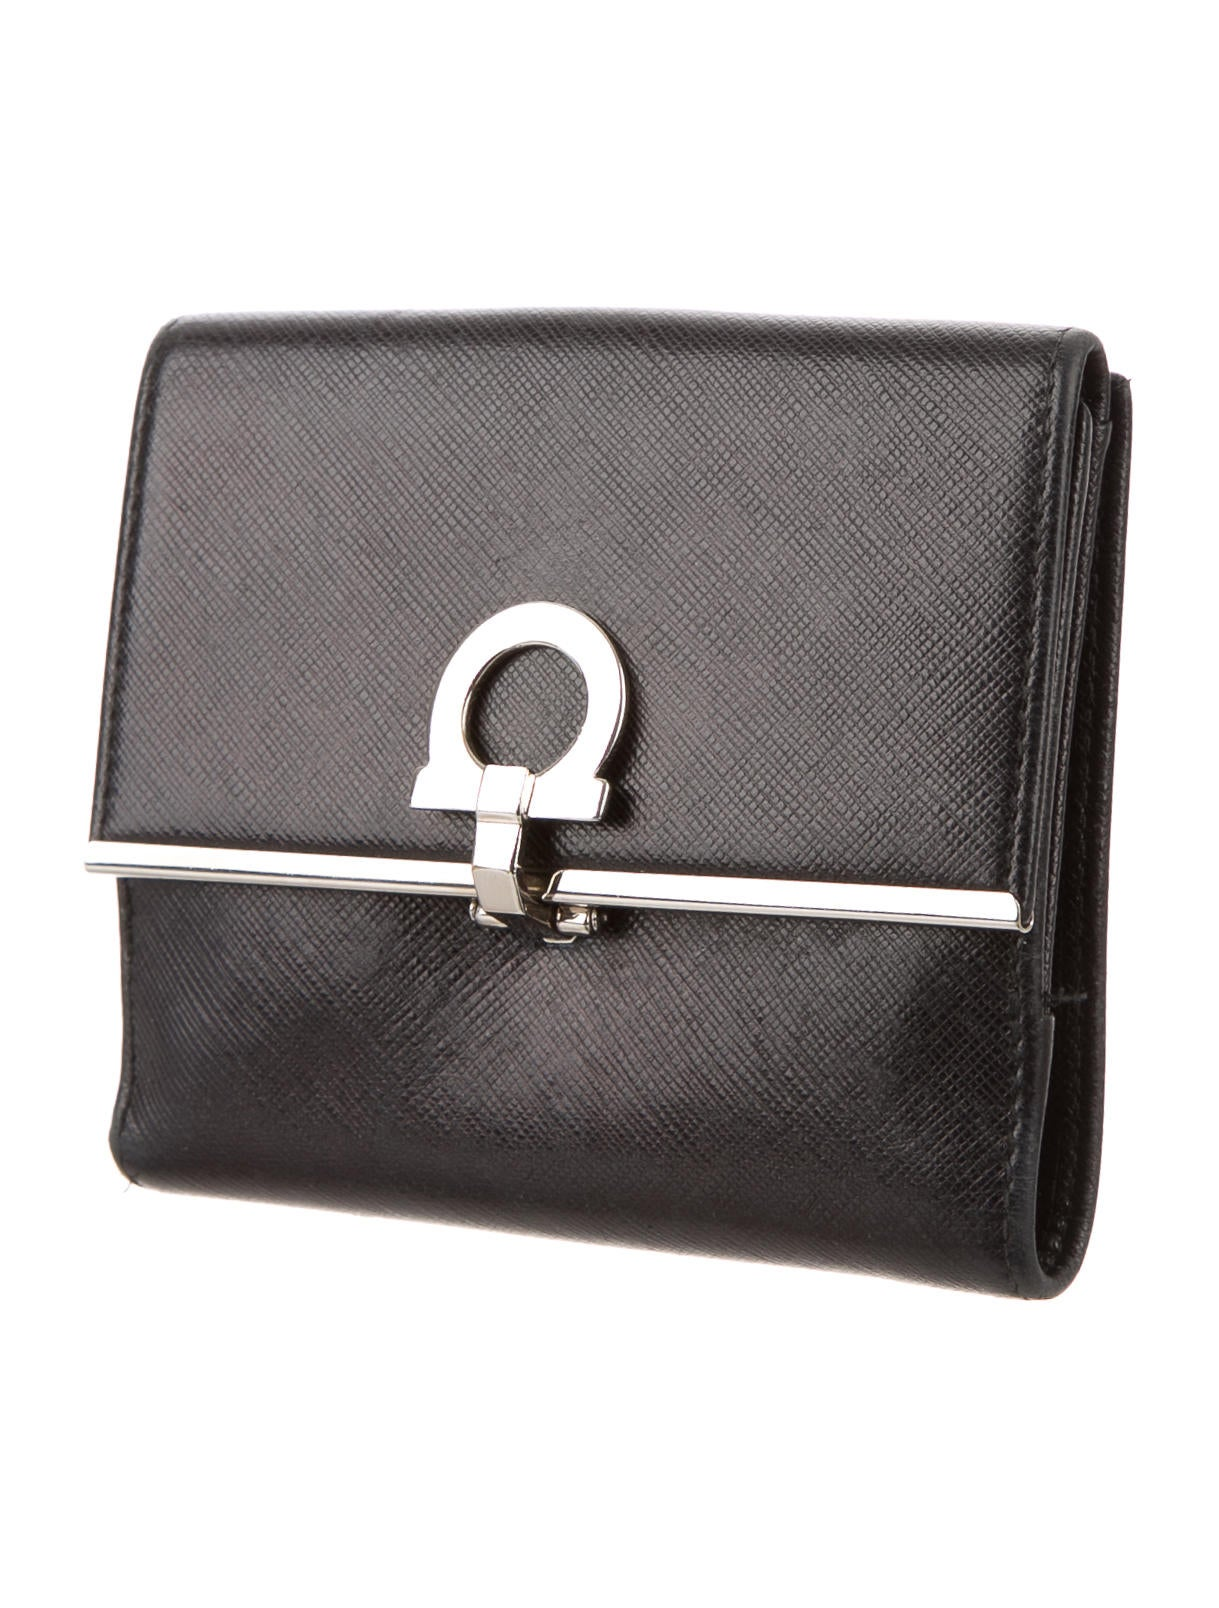 Salvatore Ferragamo Gancini Leather Wallet - Accessories - SAL36089 ...